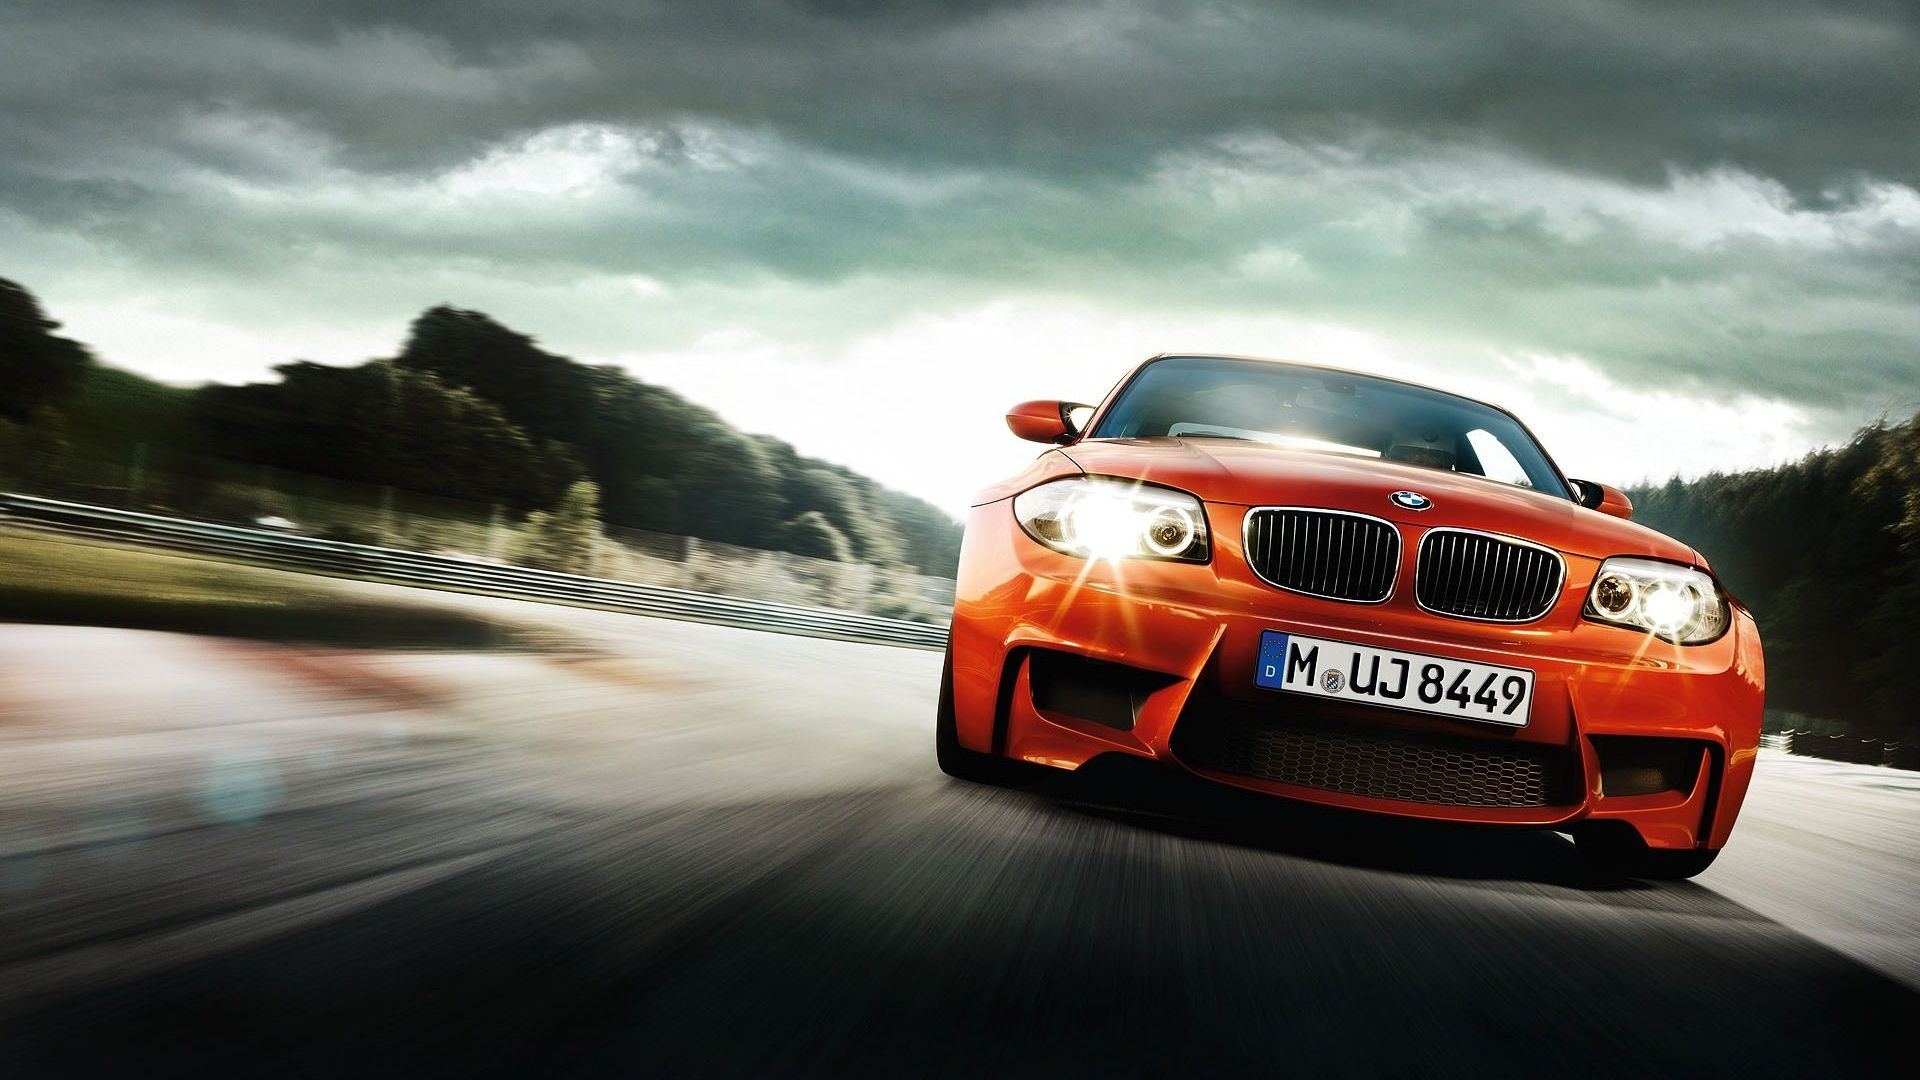 Best BMW Wallpapers For Desktop Tablets in HD For Download 1920x1080